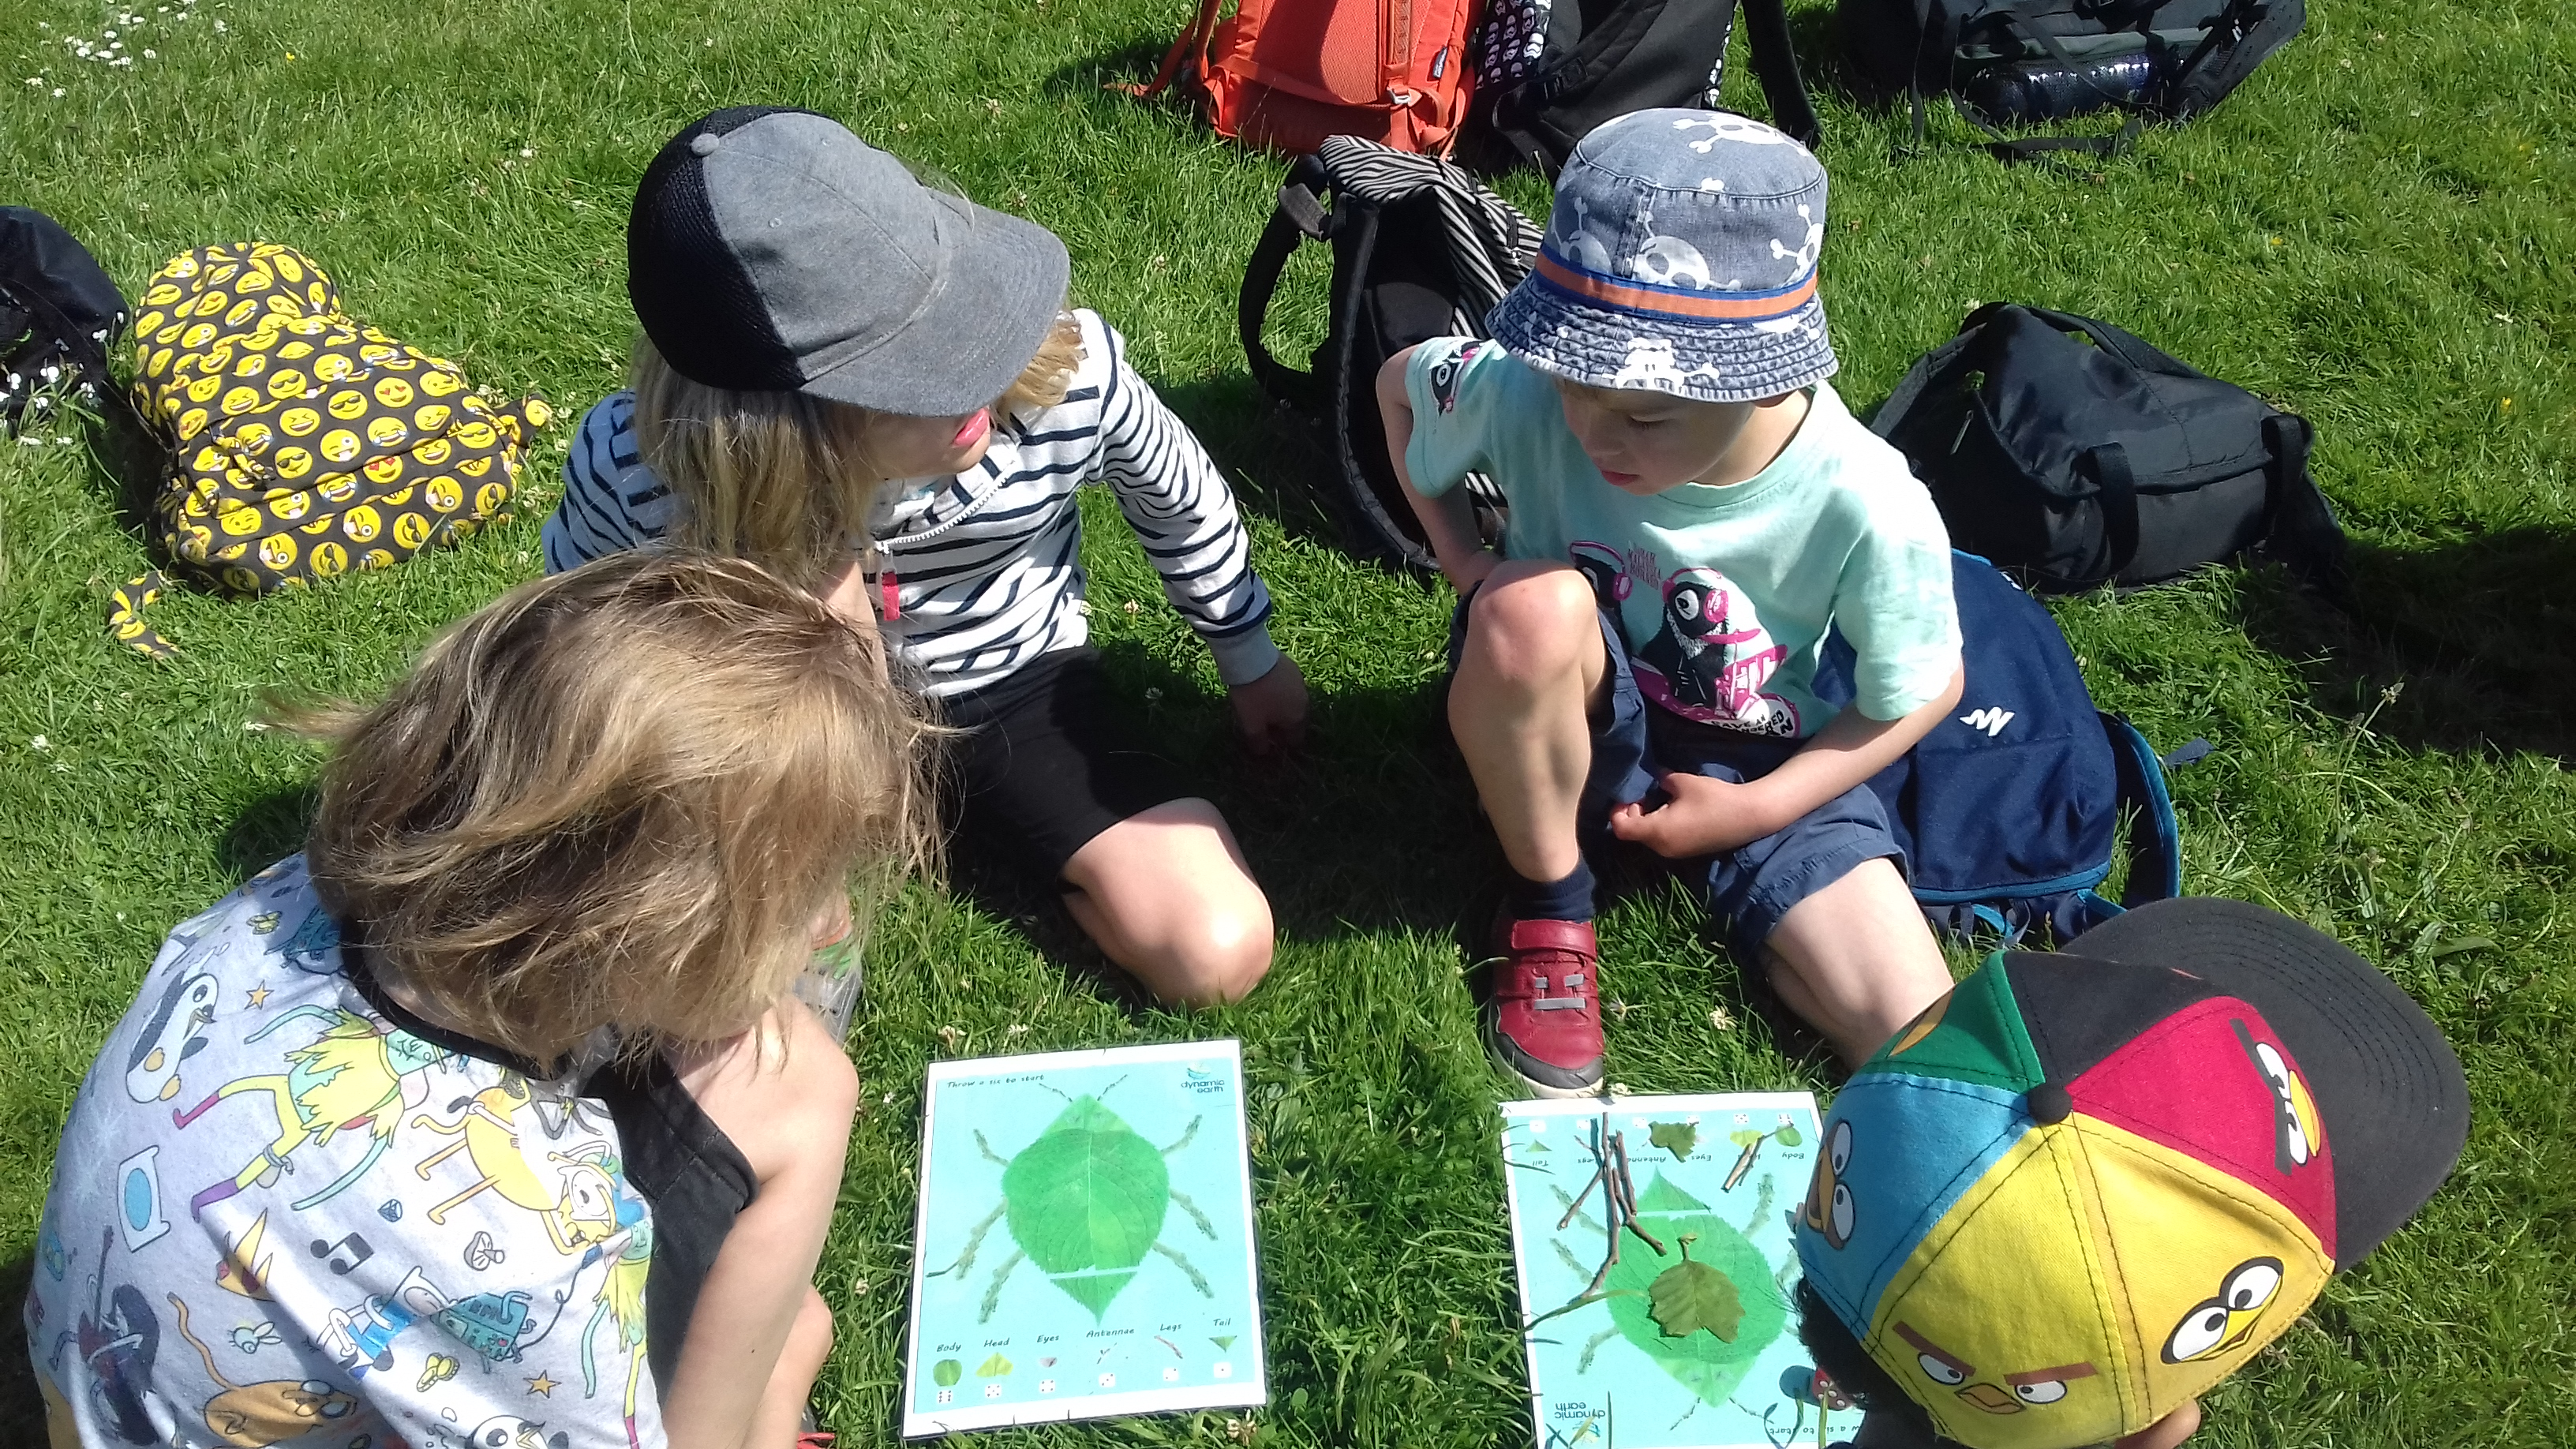 April 2nd - Nature Detectives: Family Fun in the Outdoors